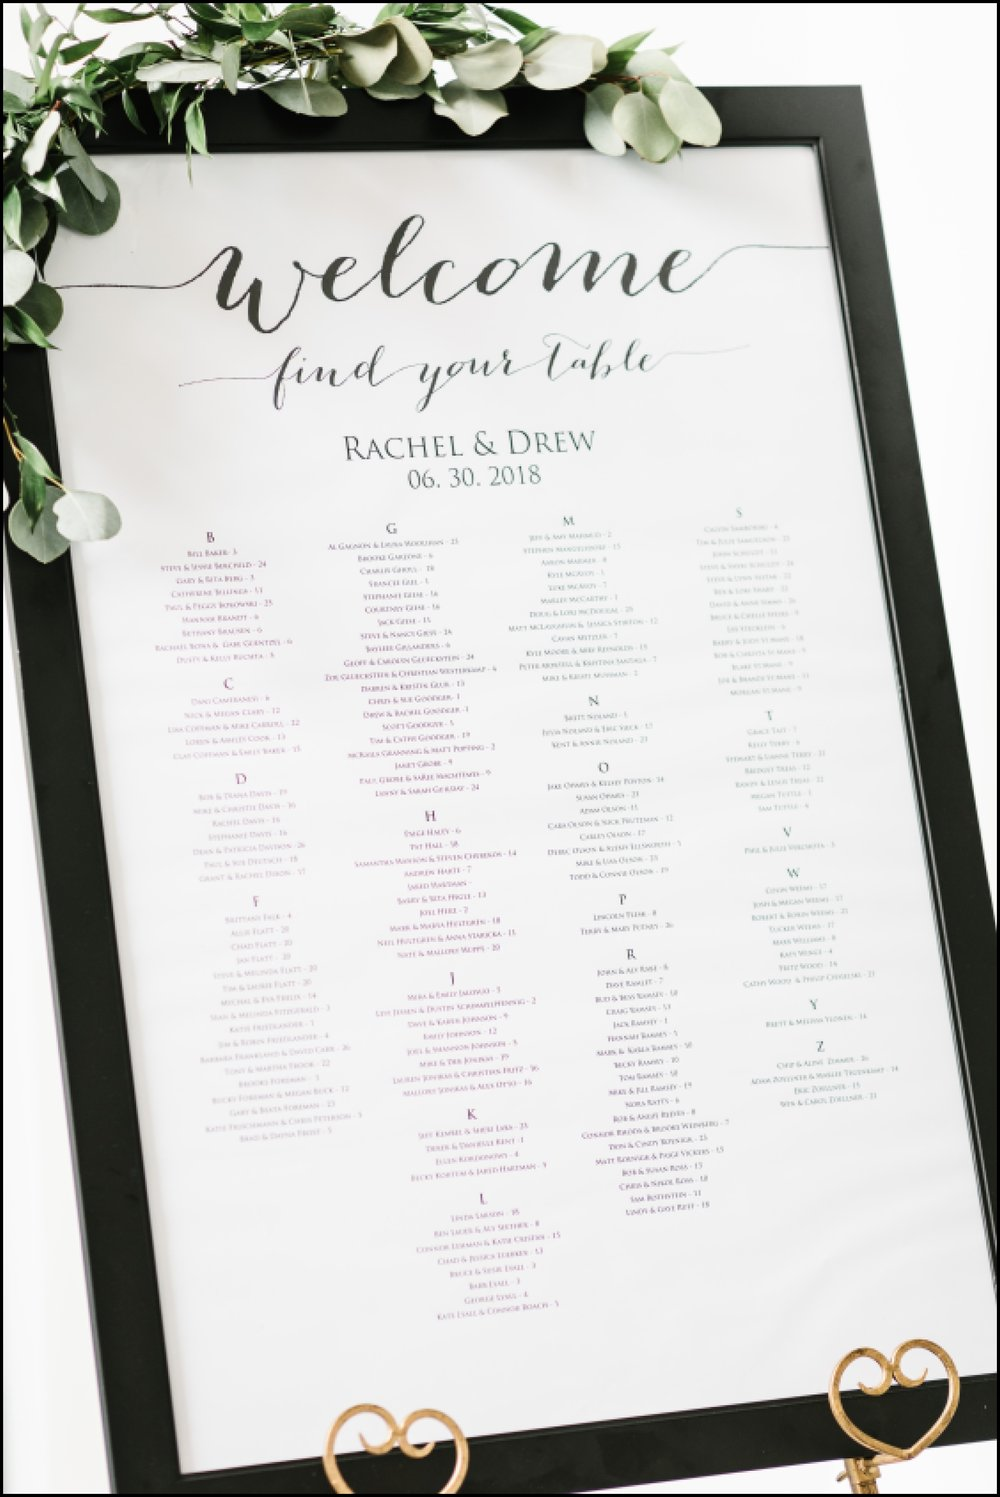 welcome seating chart